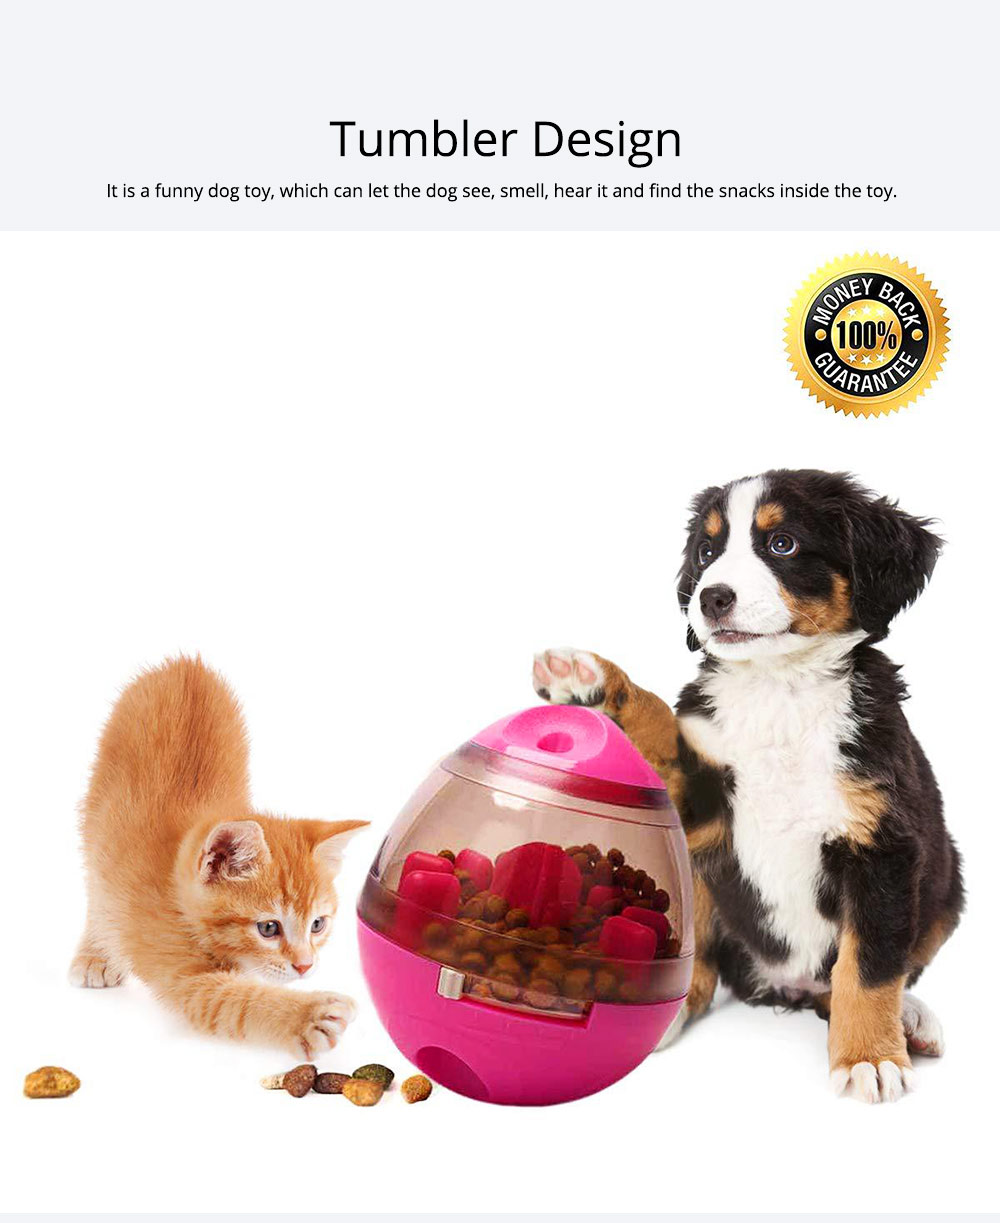 Dog Treat Dispenser Ball Toy Interactive Treat-dispensing Ball for Dogs and Cats Tumbler Design 1